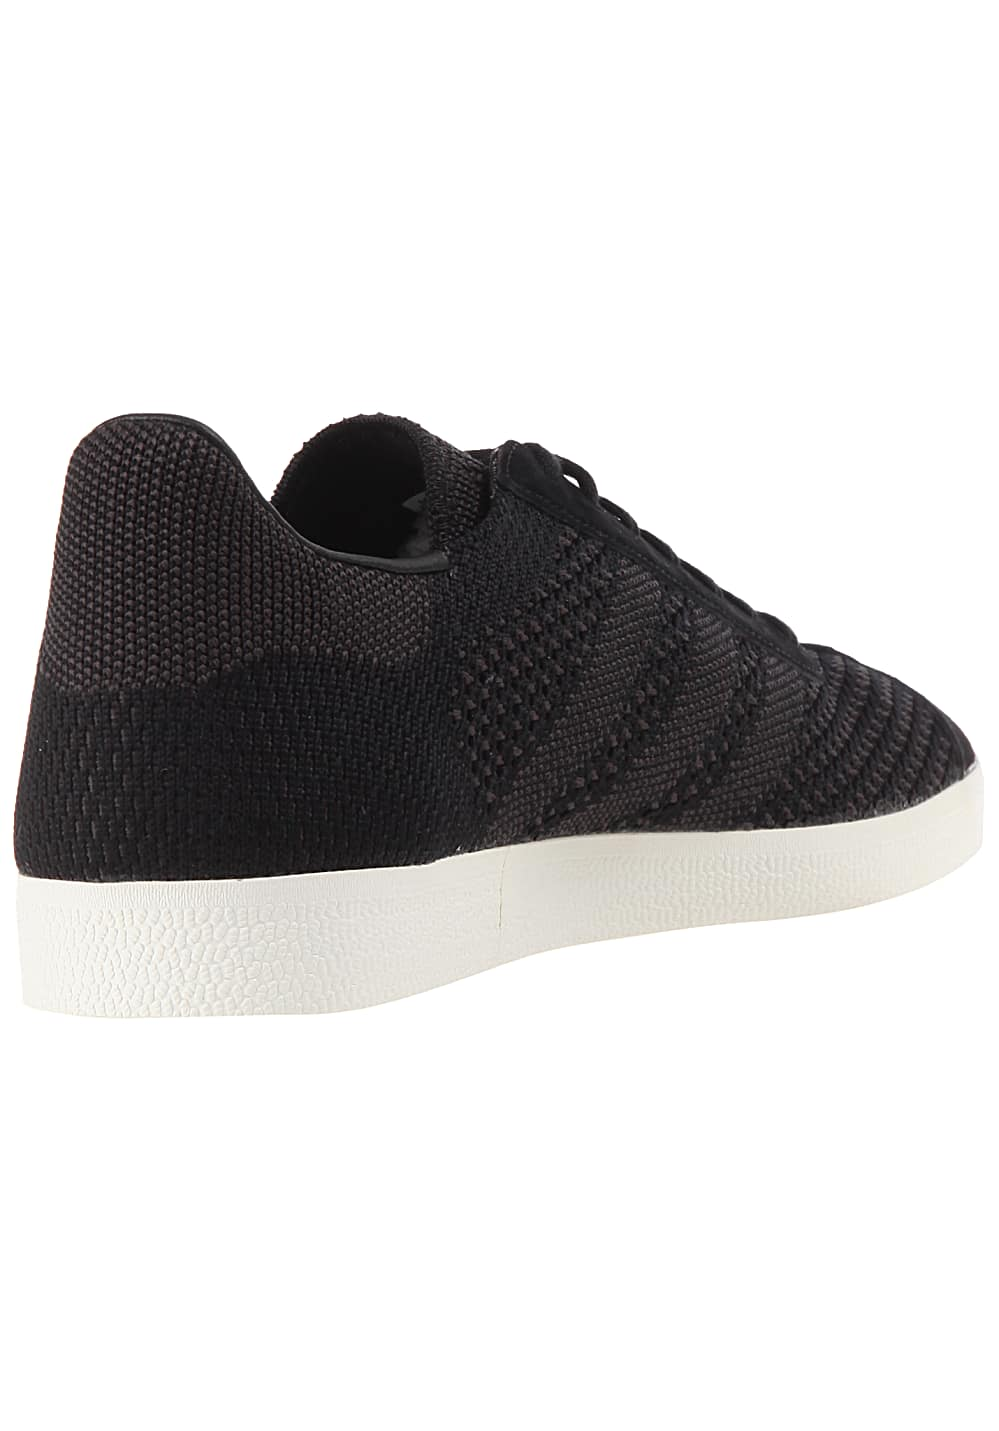 9e6cd3c4685a Next. -20%. ADIDAS ORIGINALS. Gazelle Primeknit - Sneakers. Regular Price   ...